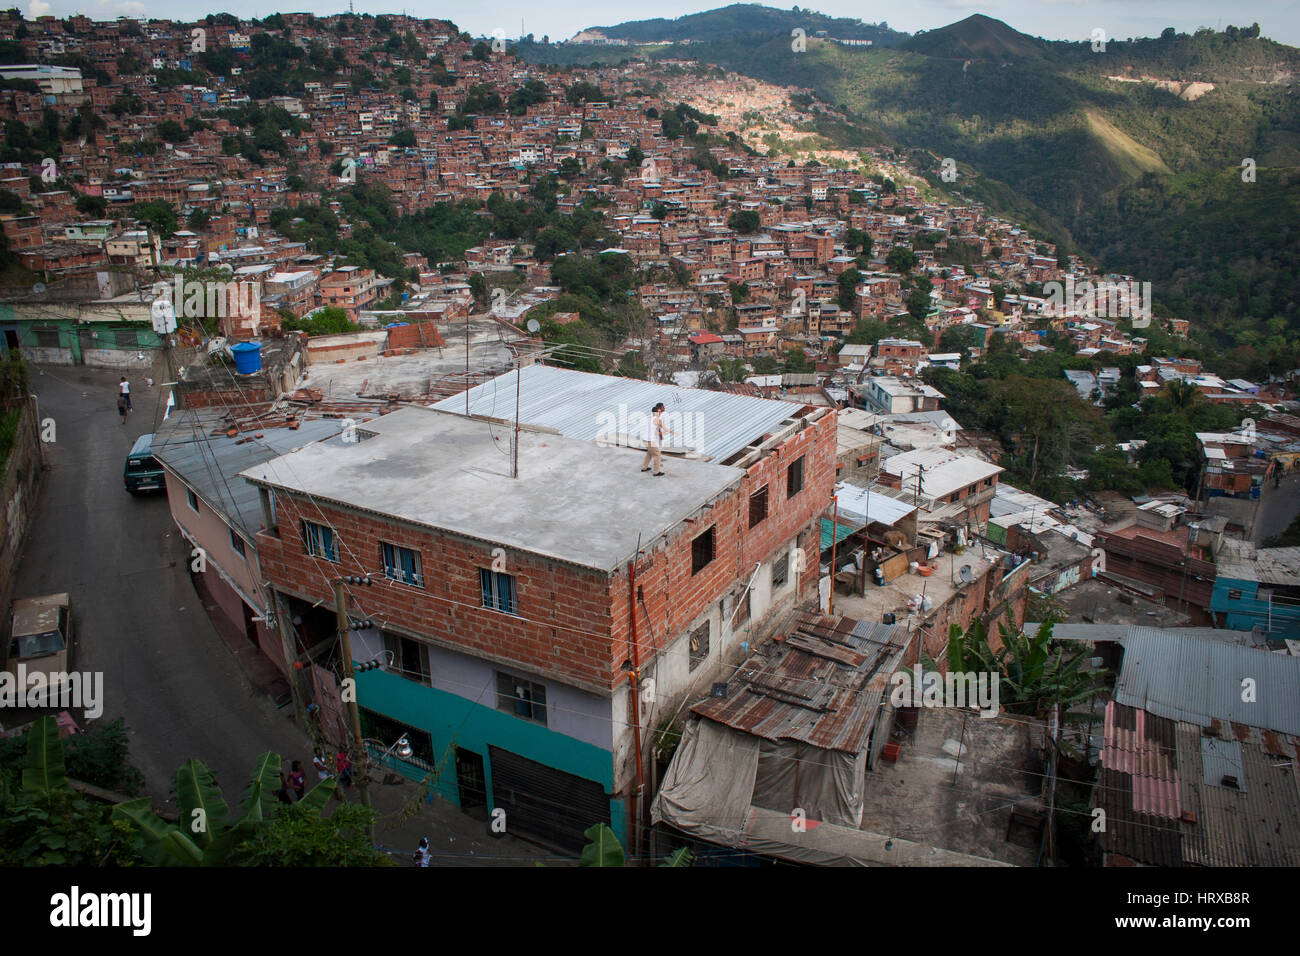 Venezuela, Caracas, Petare, Miranda State 06/04/2012. Slums in El Nazareno neighborhood in Petare. - Stock Image